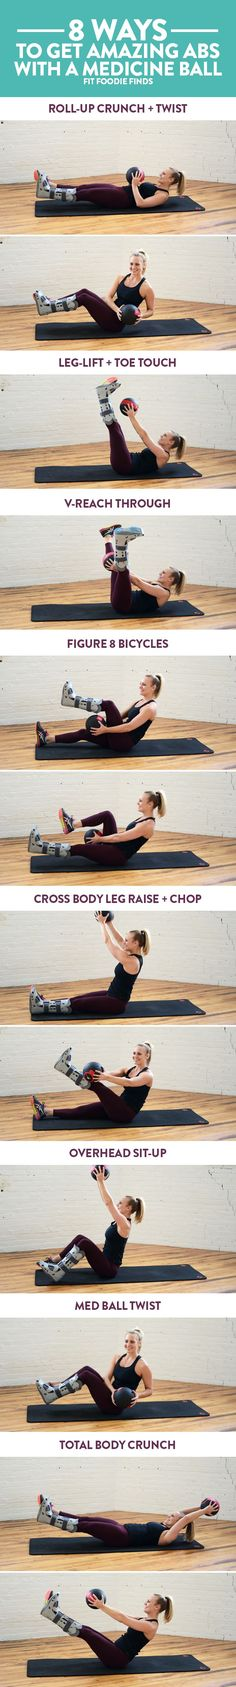 8 Ways to Get Amazing Abs with a Medicine ball. Plus- a mini circuit that you can do to finish off a workout!Here's 8 Ways to Get Amazing Abs with a Medicine ball. Plus- a mini circuit that you can do to finish off a workout! Lower Ab Workouts, Easy Workouts, At Home Workouts, Ab Exercises, Fitness Workouts, Ab Moves, Stability Exercises, Fitness Weightloss, Fitness Motivation